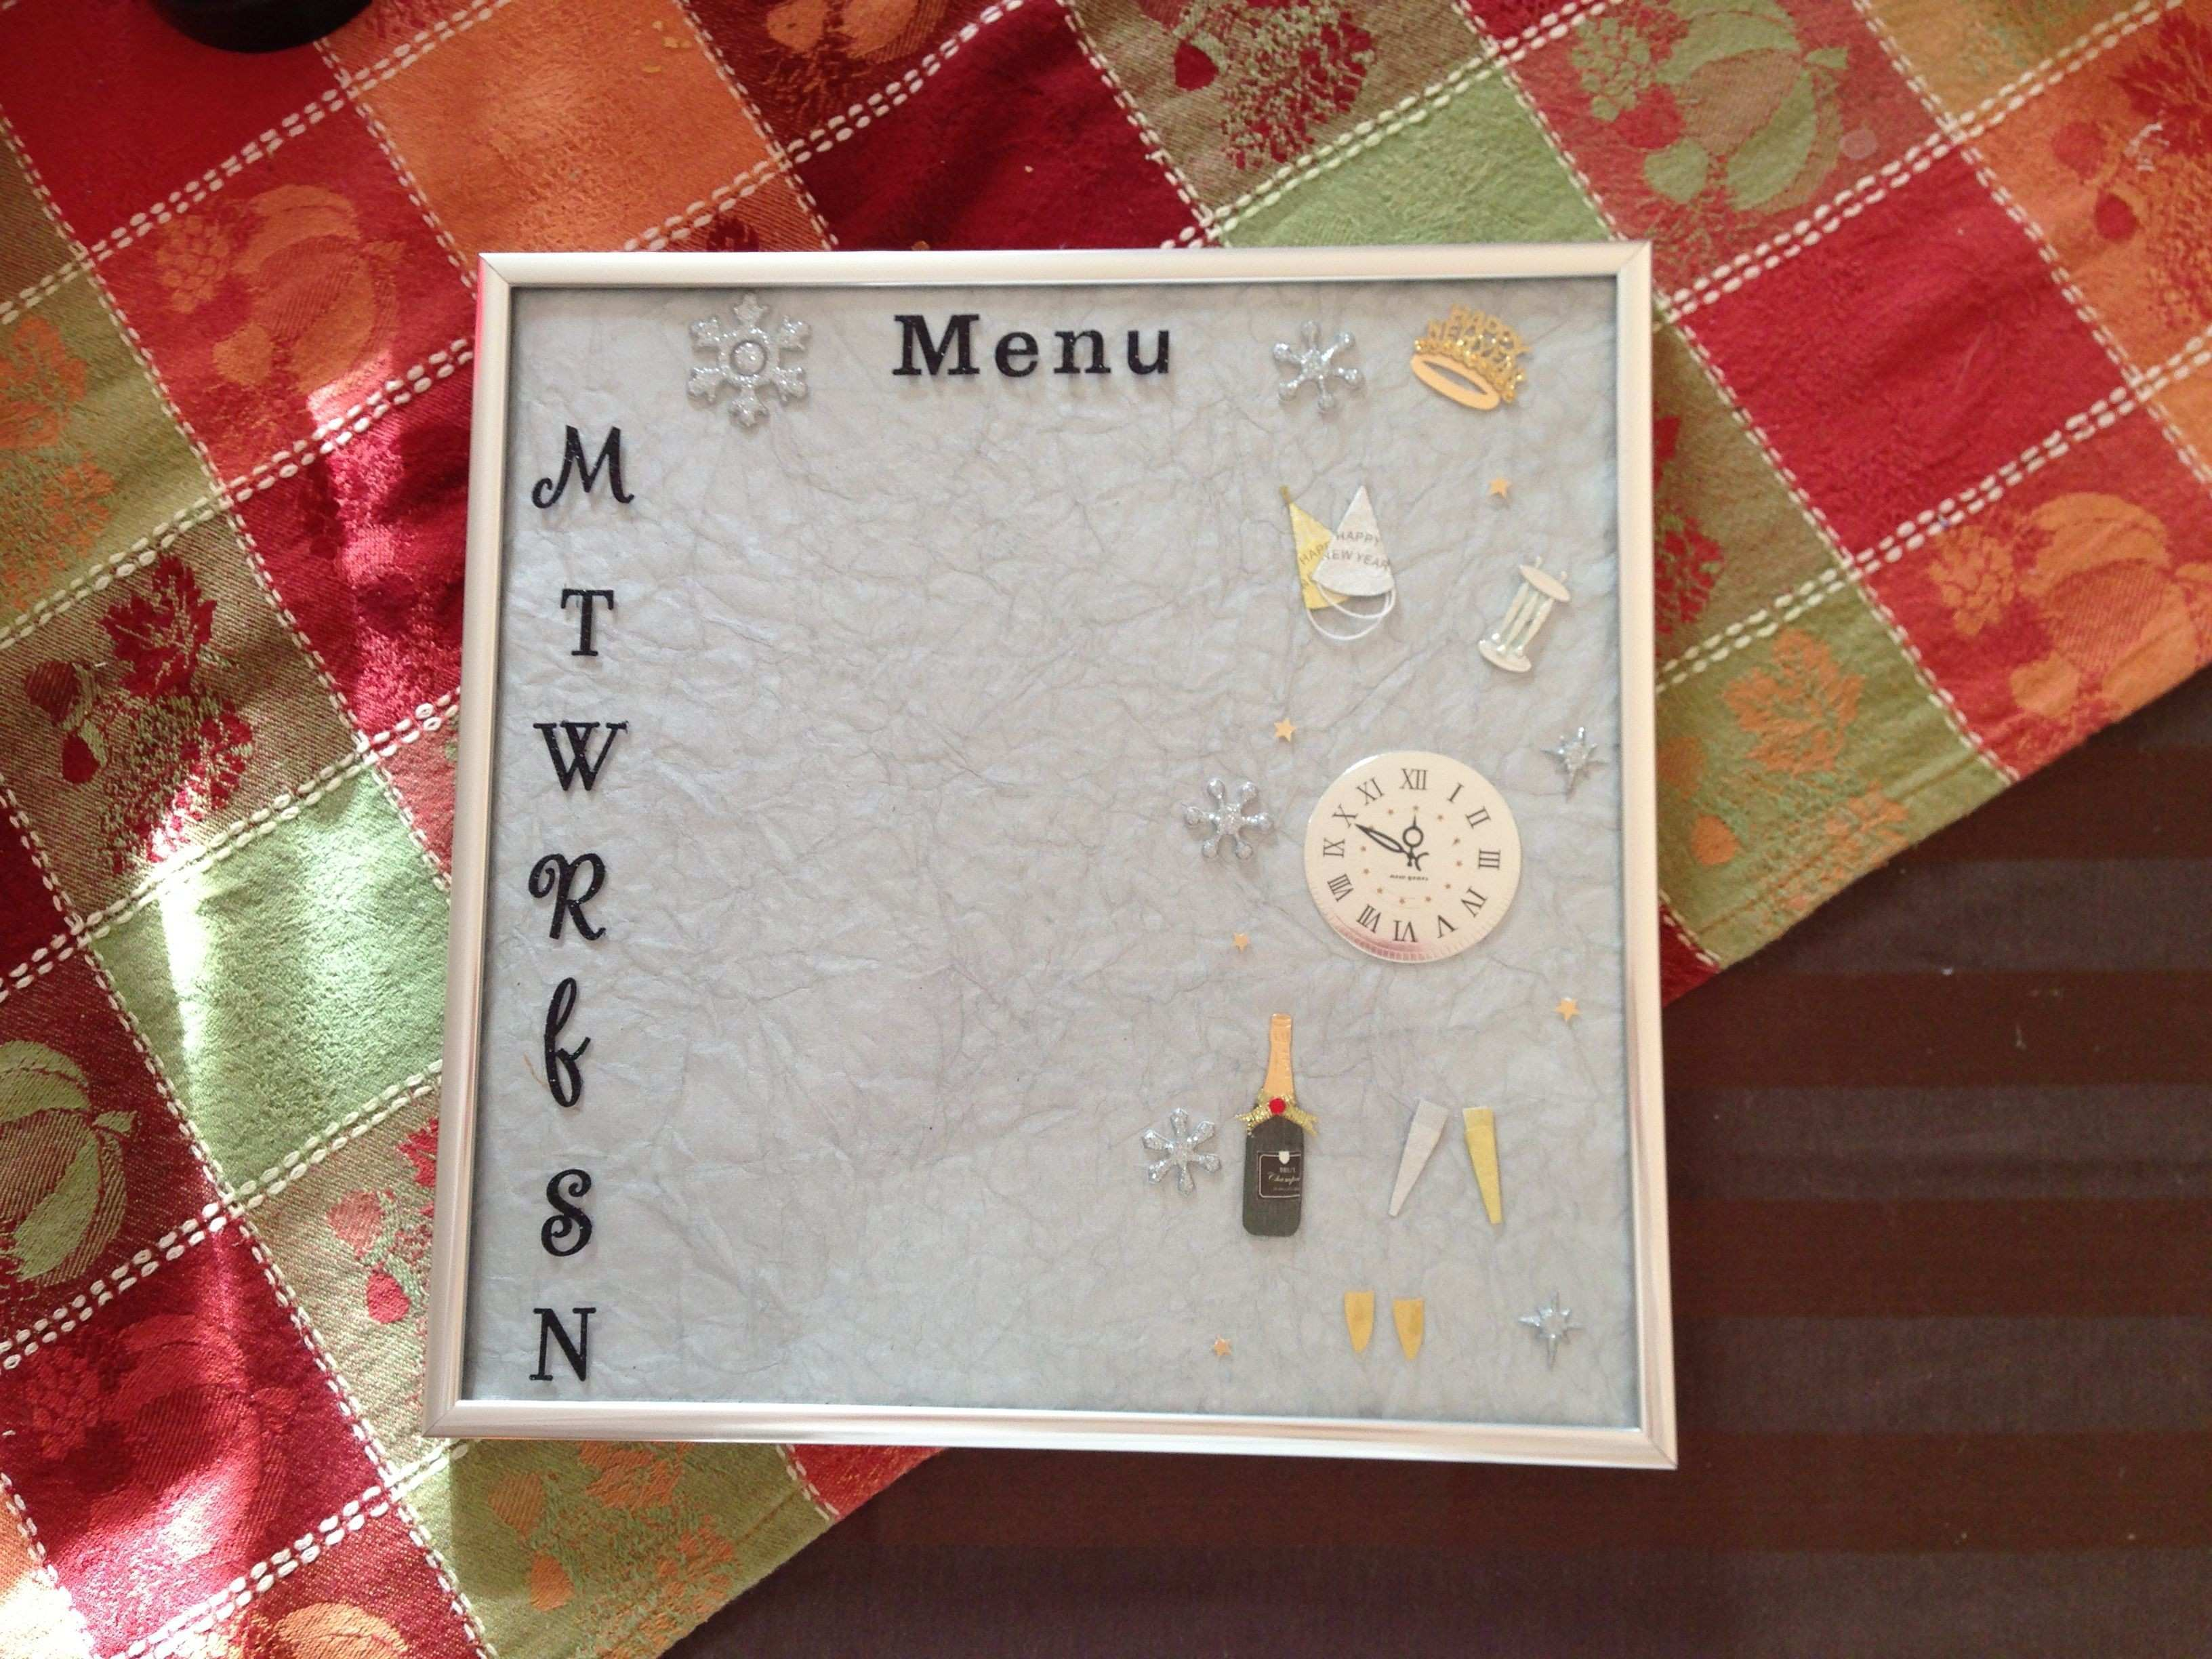 12x12 Picture Frame Inspirational Menu Board with Monthly themes Use ...